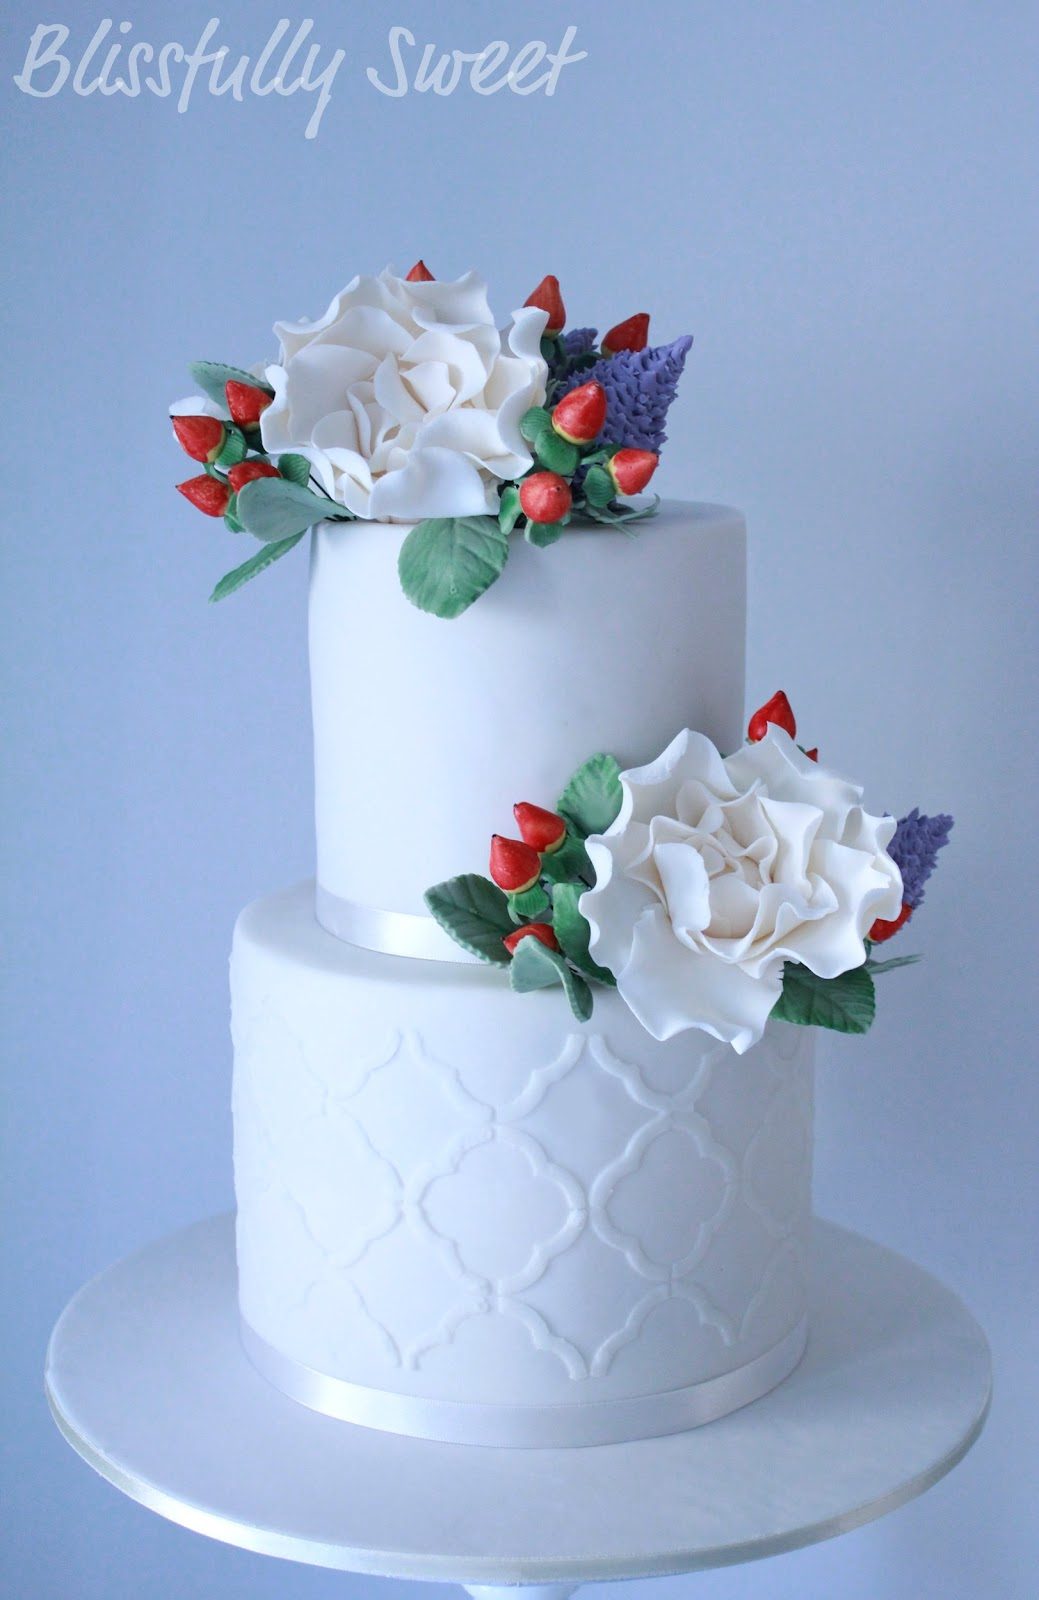 blissfully sweet stencil blooms wedding cake. Black Bedroom Furniture Sets. Home Design Ideas